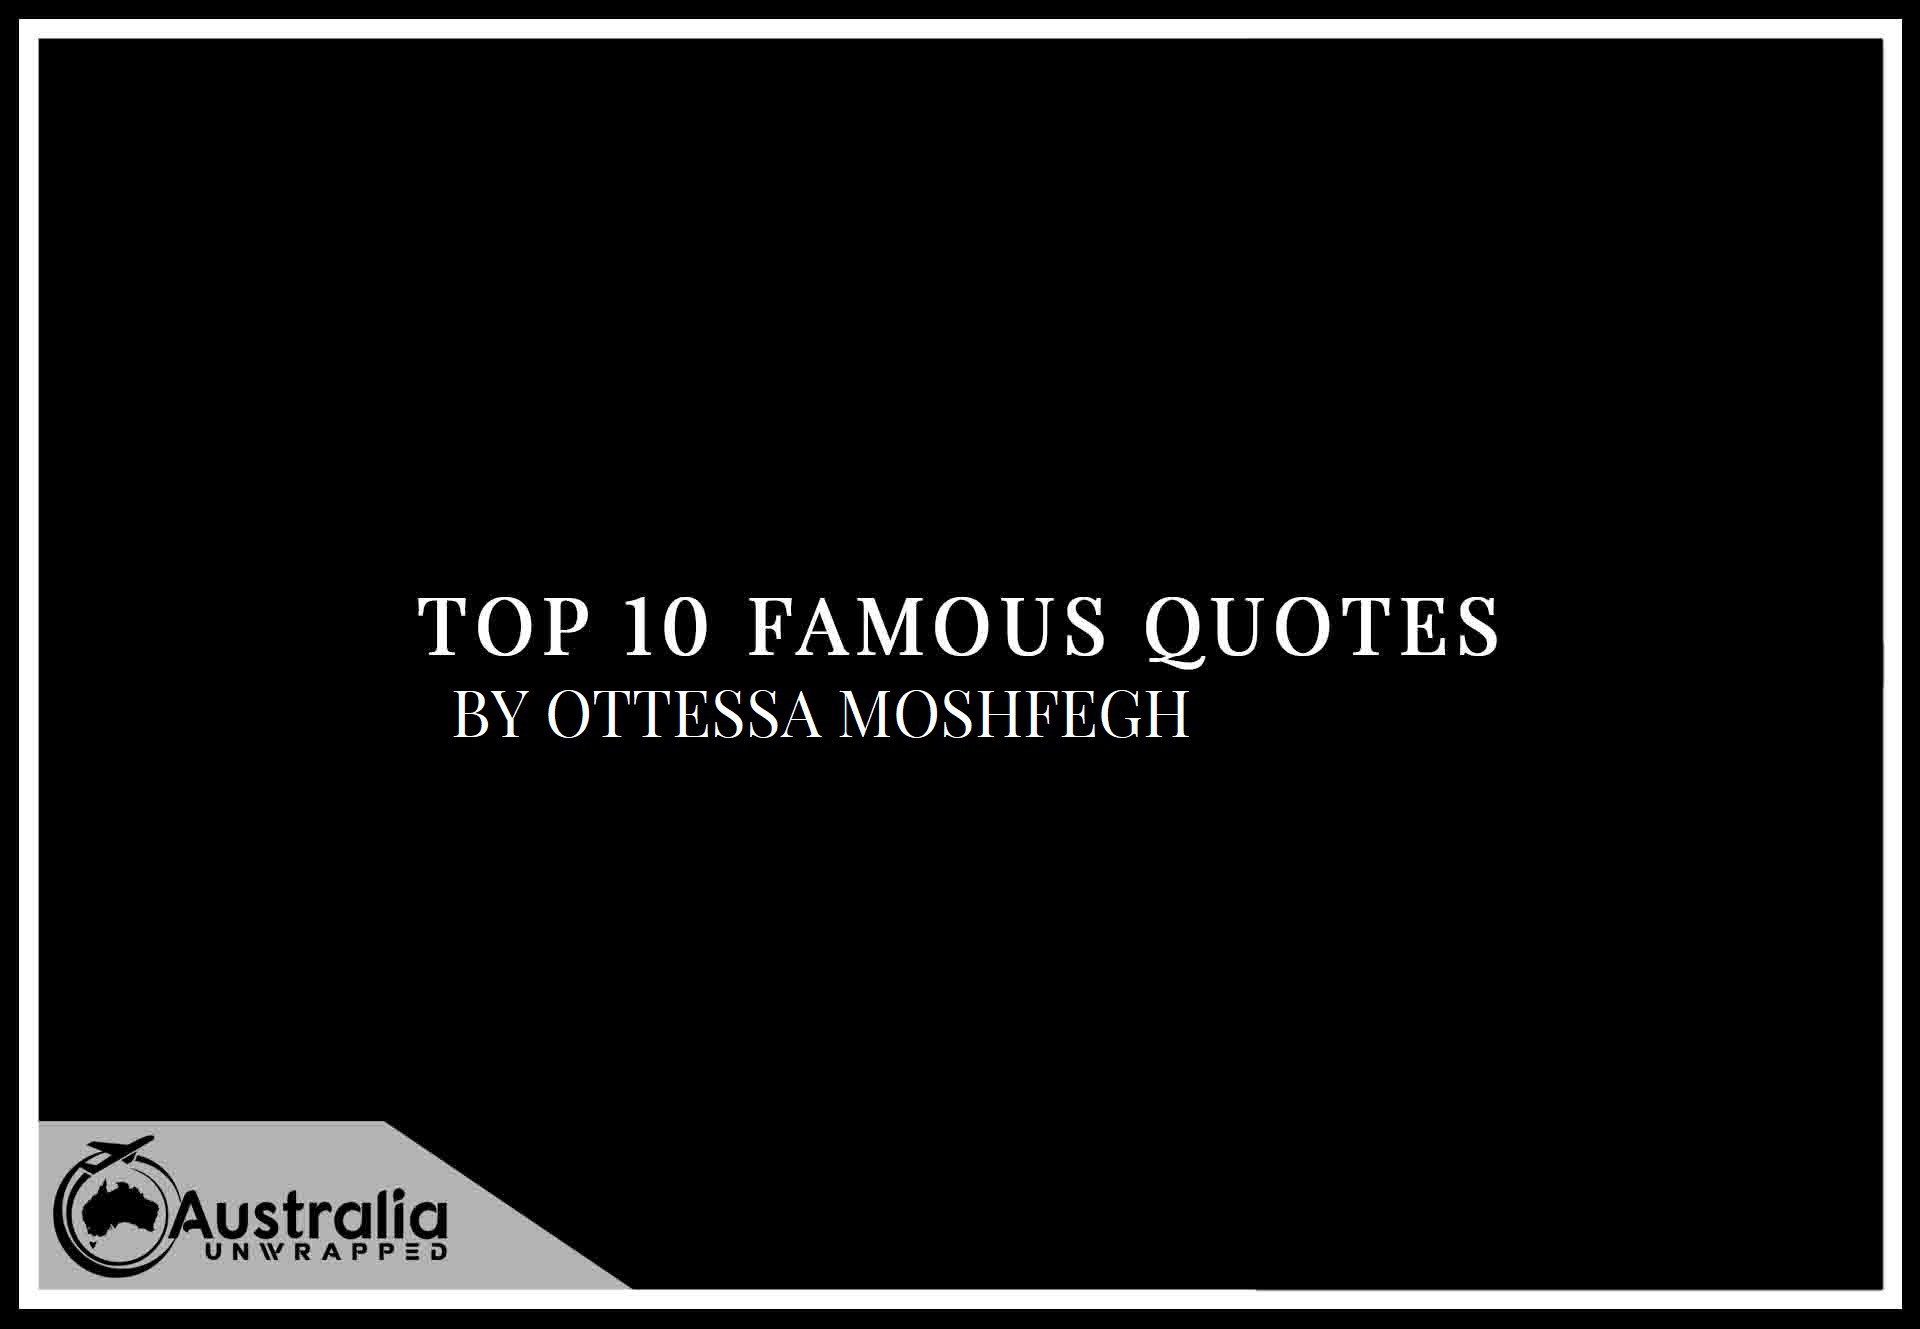 Top 10 Famous Quotes by Author Ottessa Moshfegh